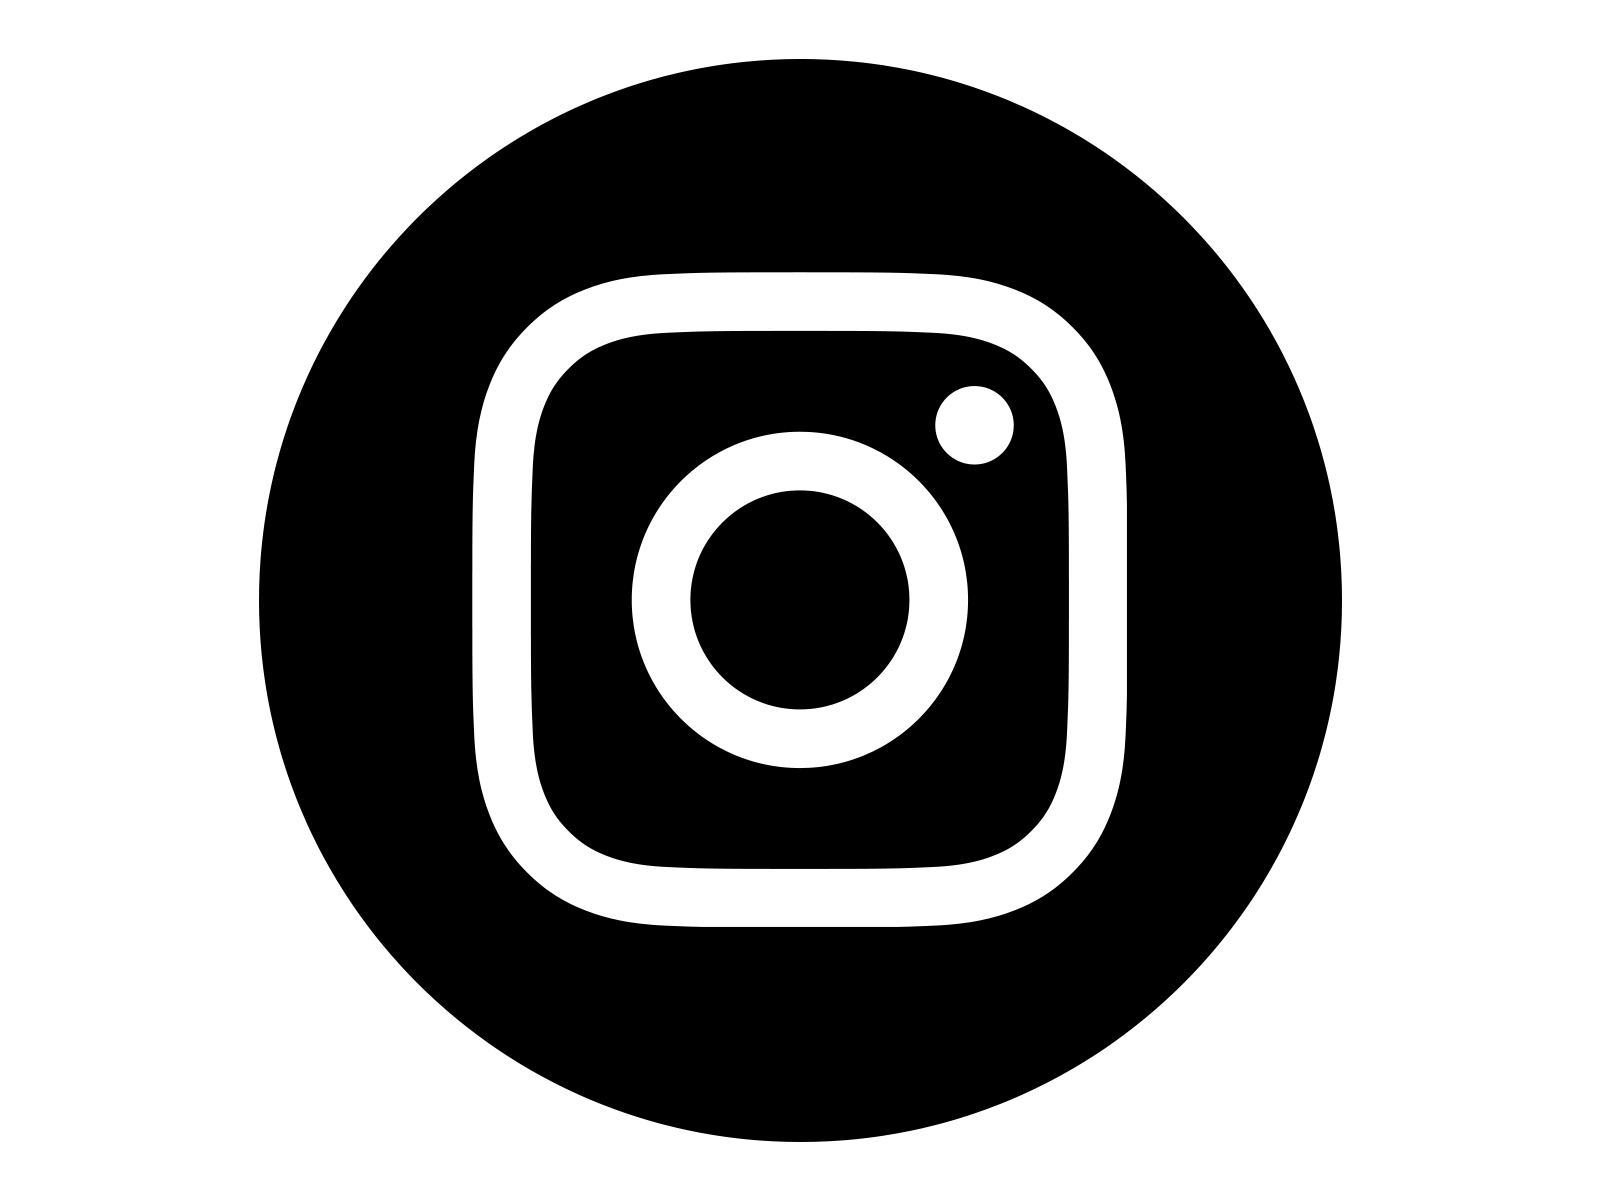 png freeuse stock Logo icon transparentpng . Circle clipart instagram.